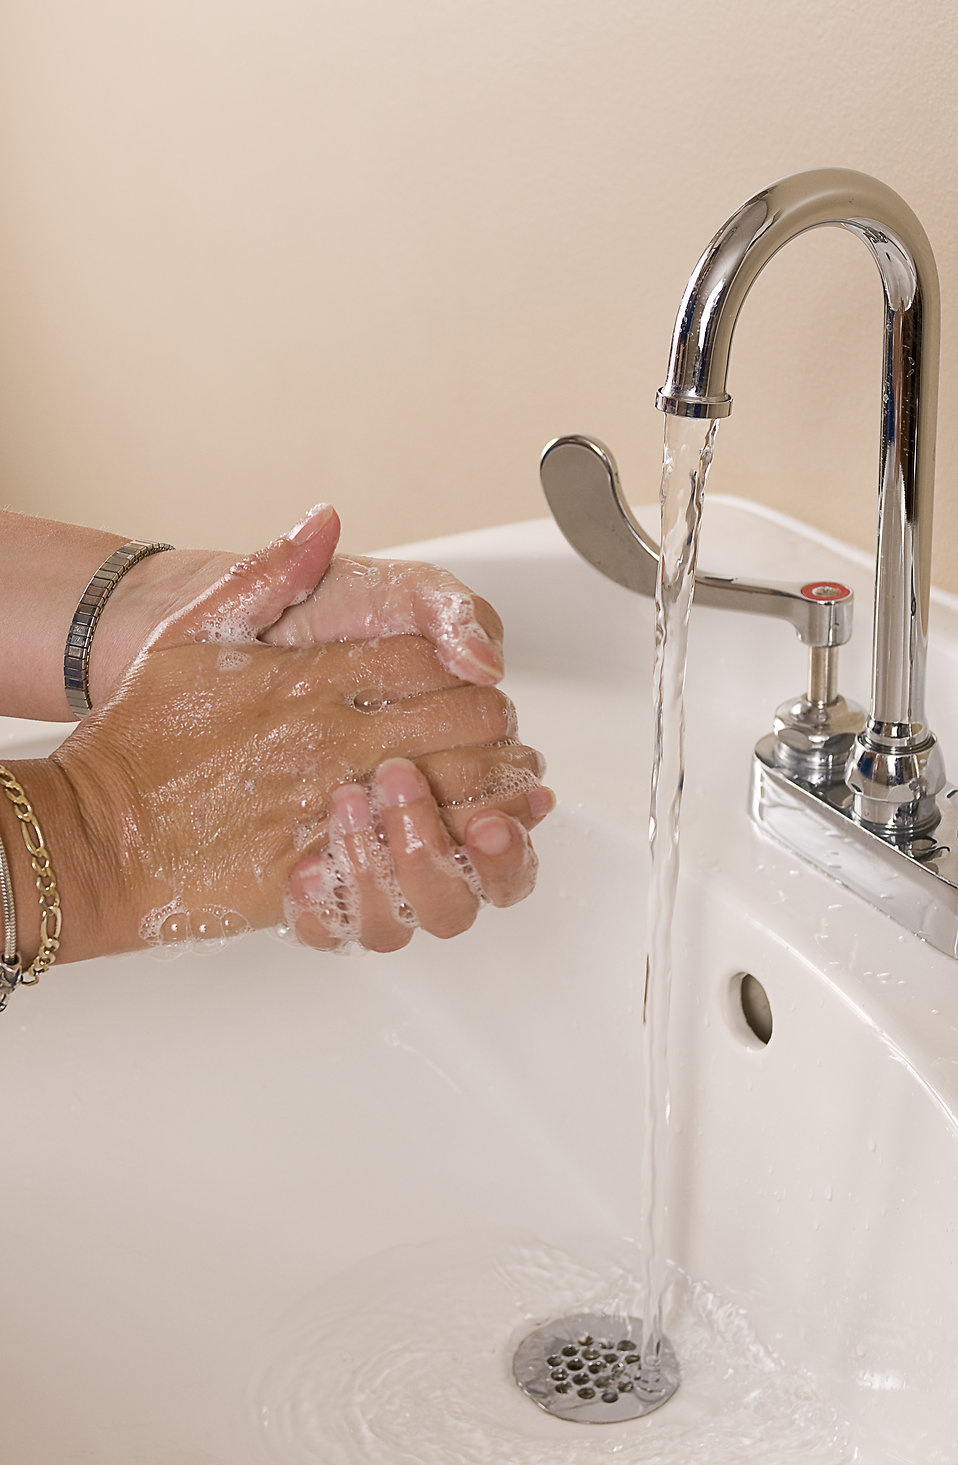 Hands being washed in a sink : Free Stock Photo